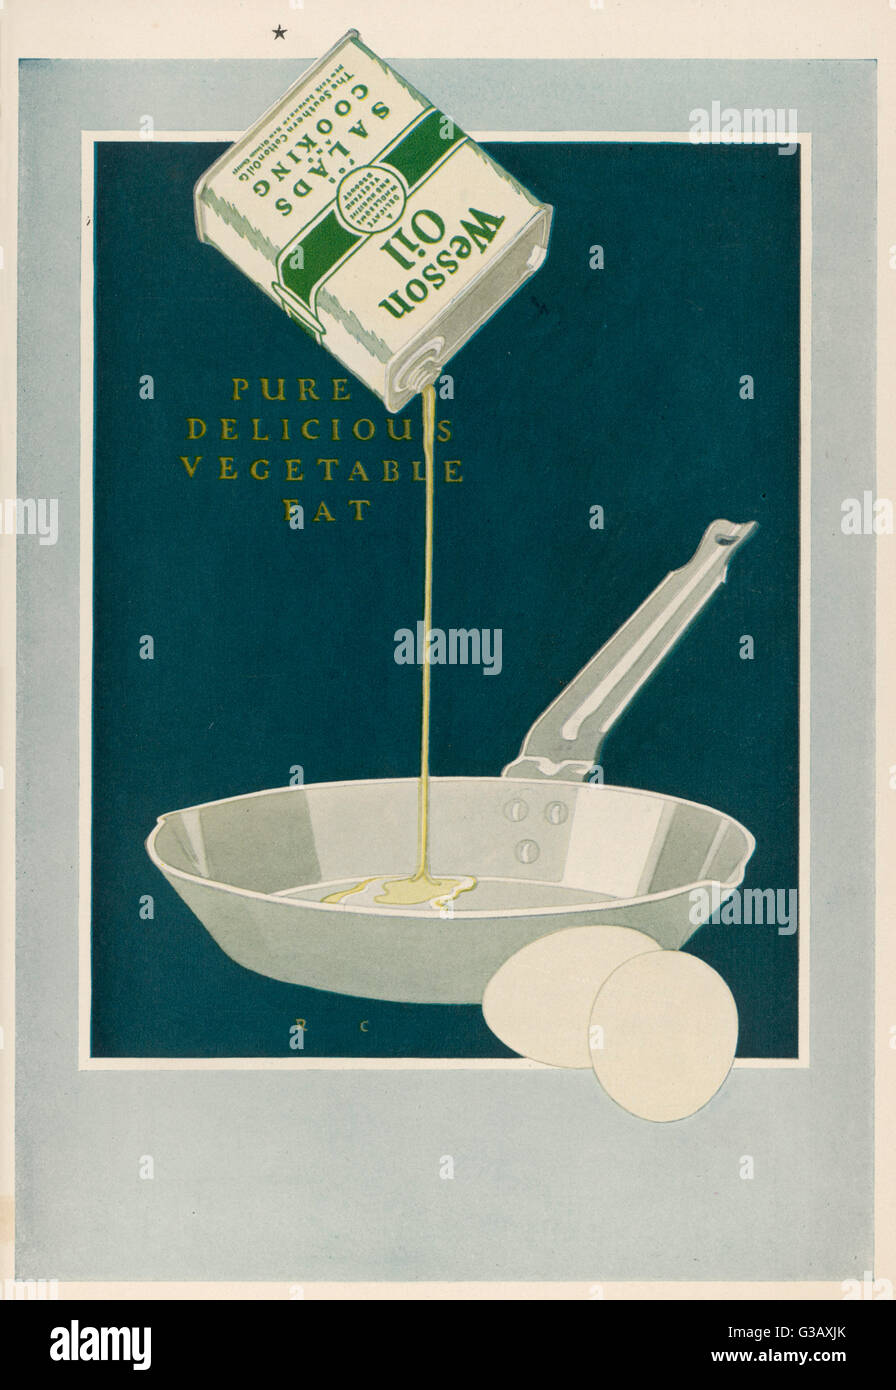 Wesson Oil, made from  vegetable fat, for salads  and cooking        Date: 1921 - Stock Image